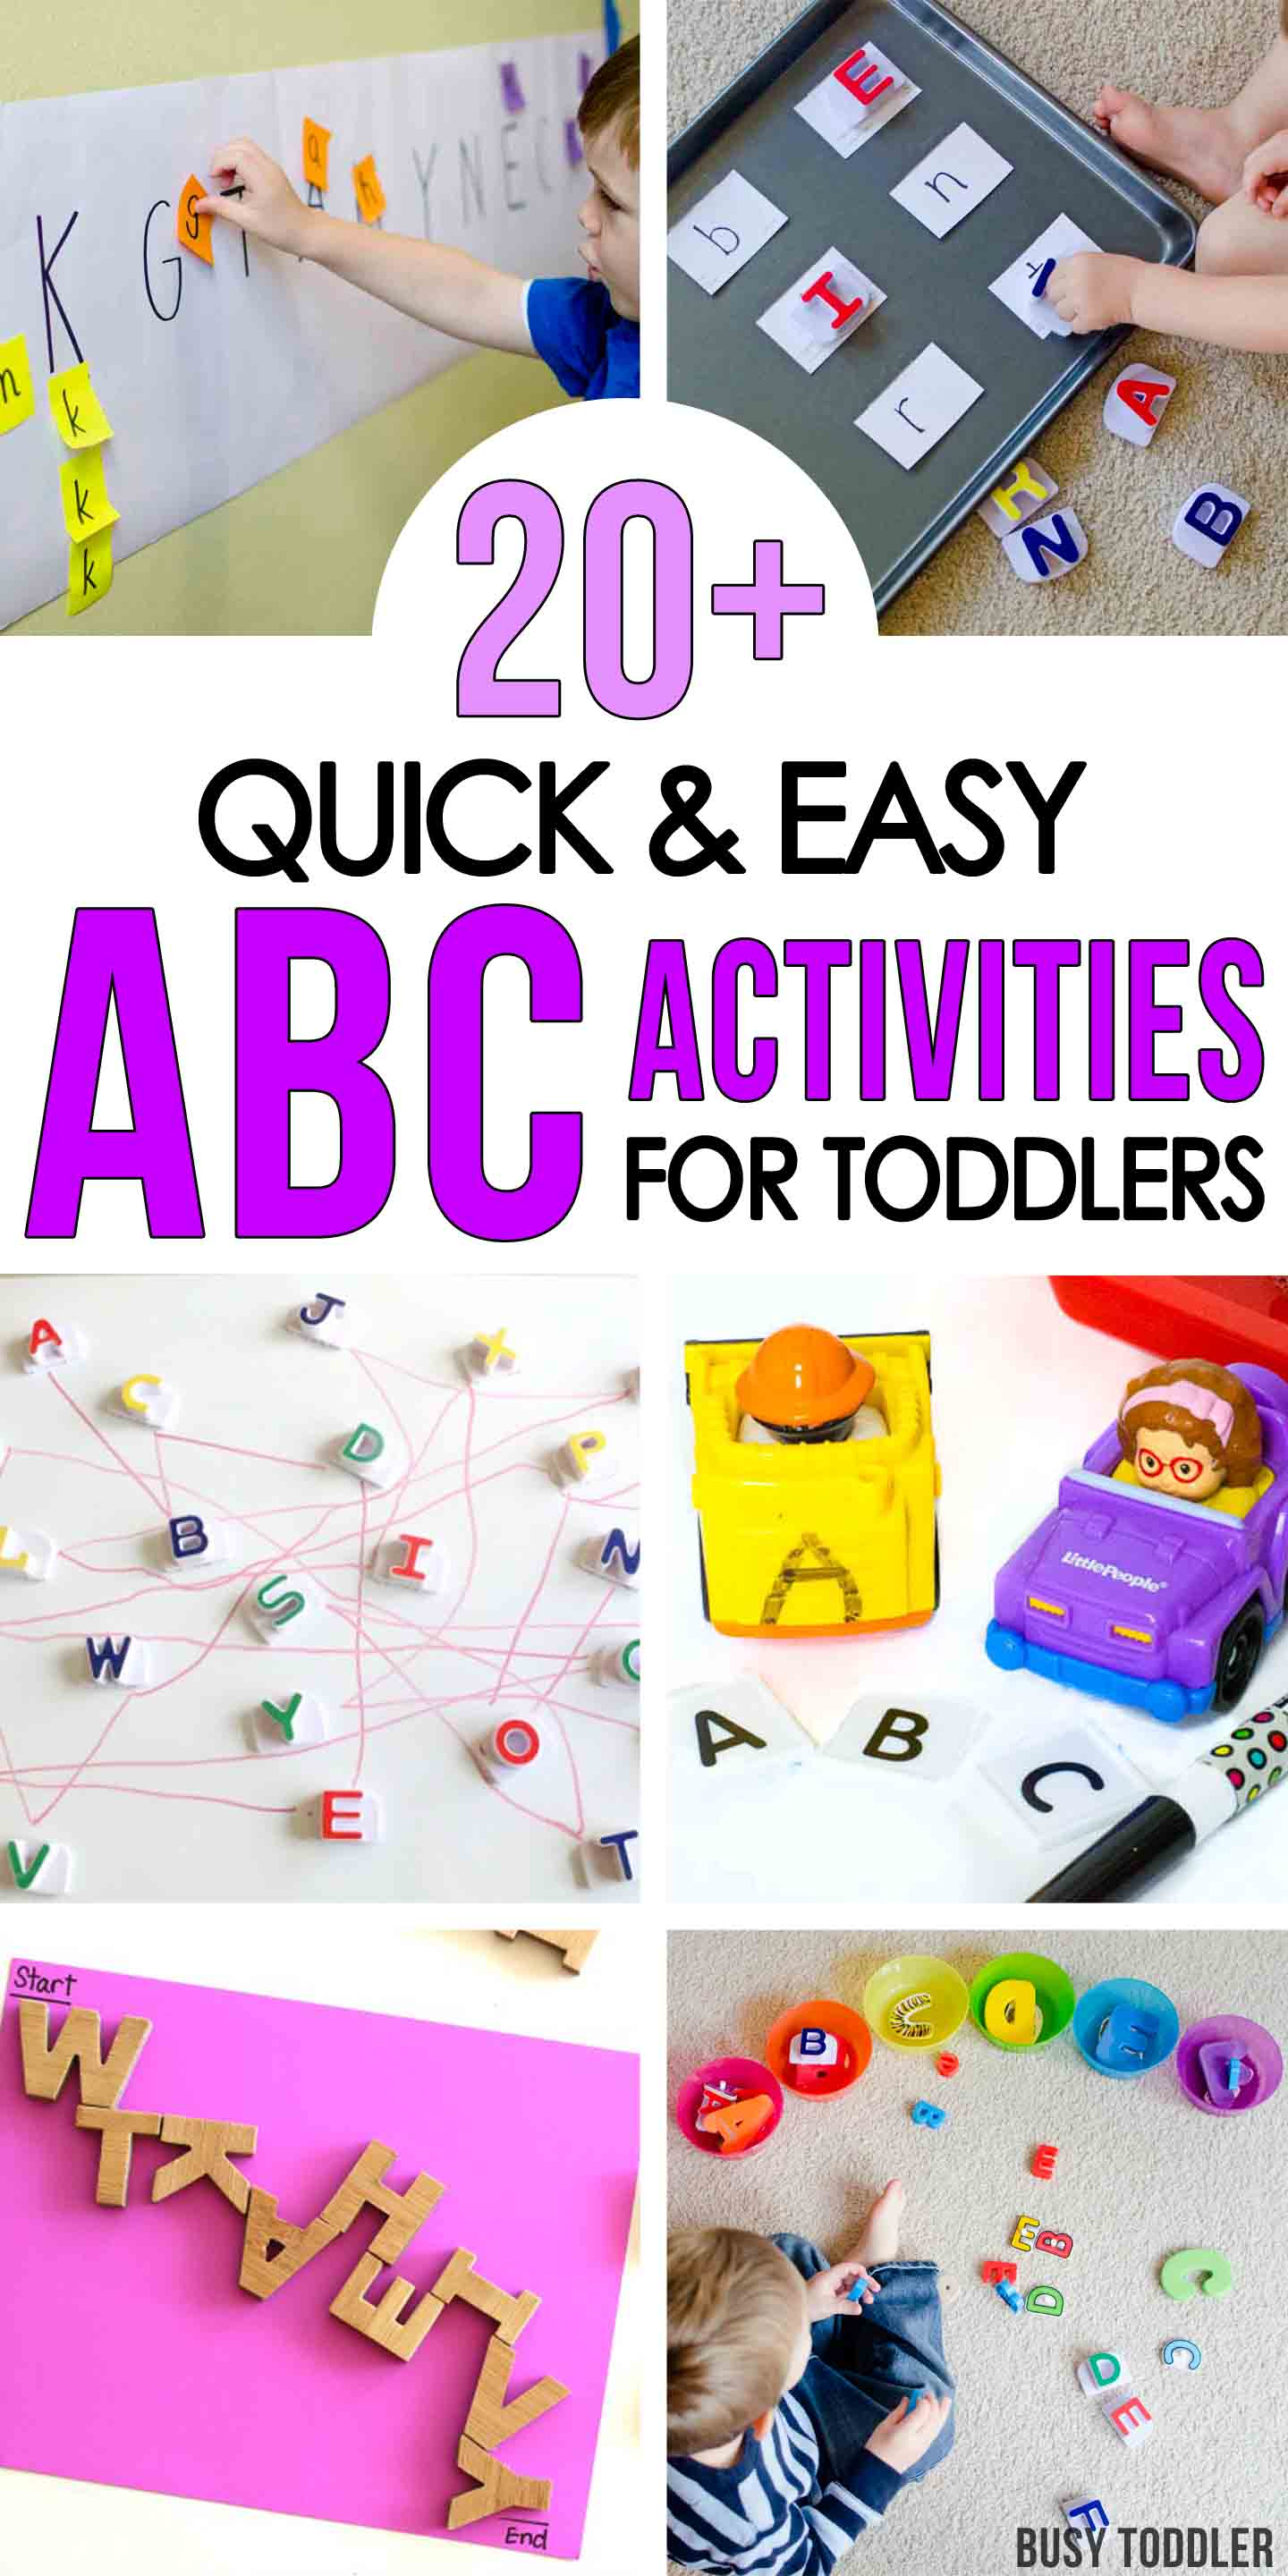 50+ Alphabet Activities for Toddlers - Busy Toddler